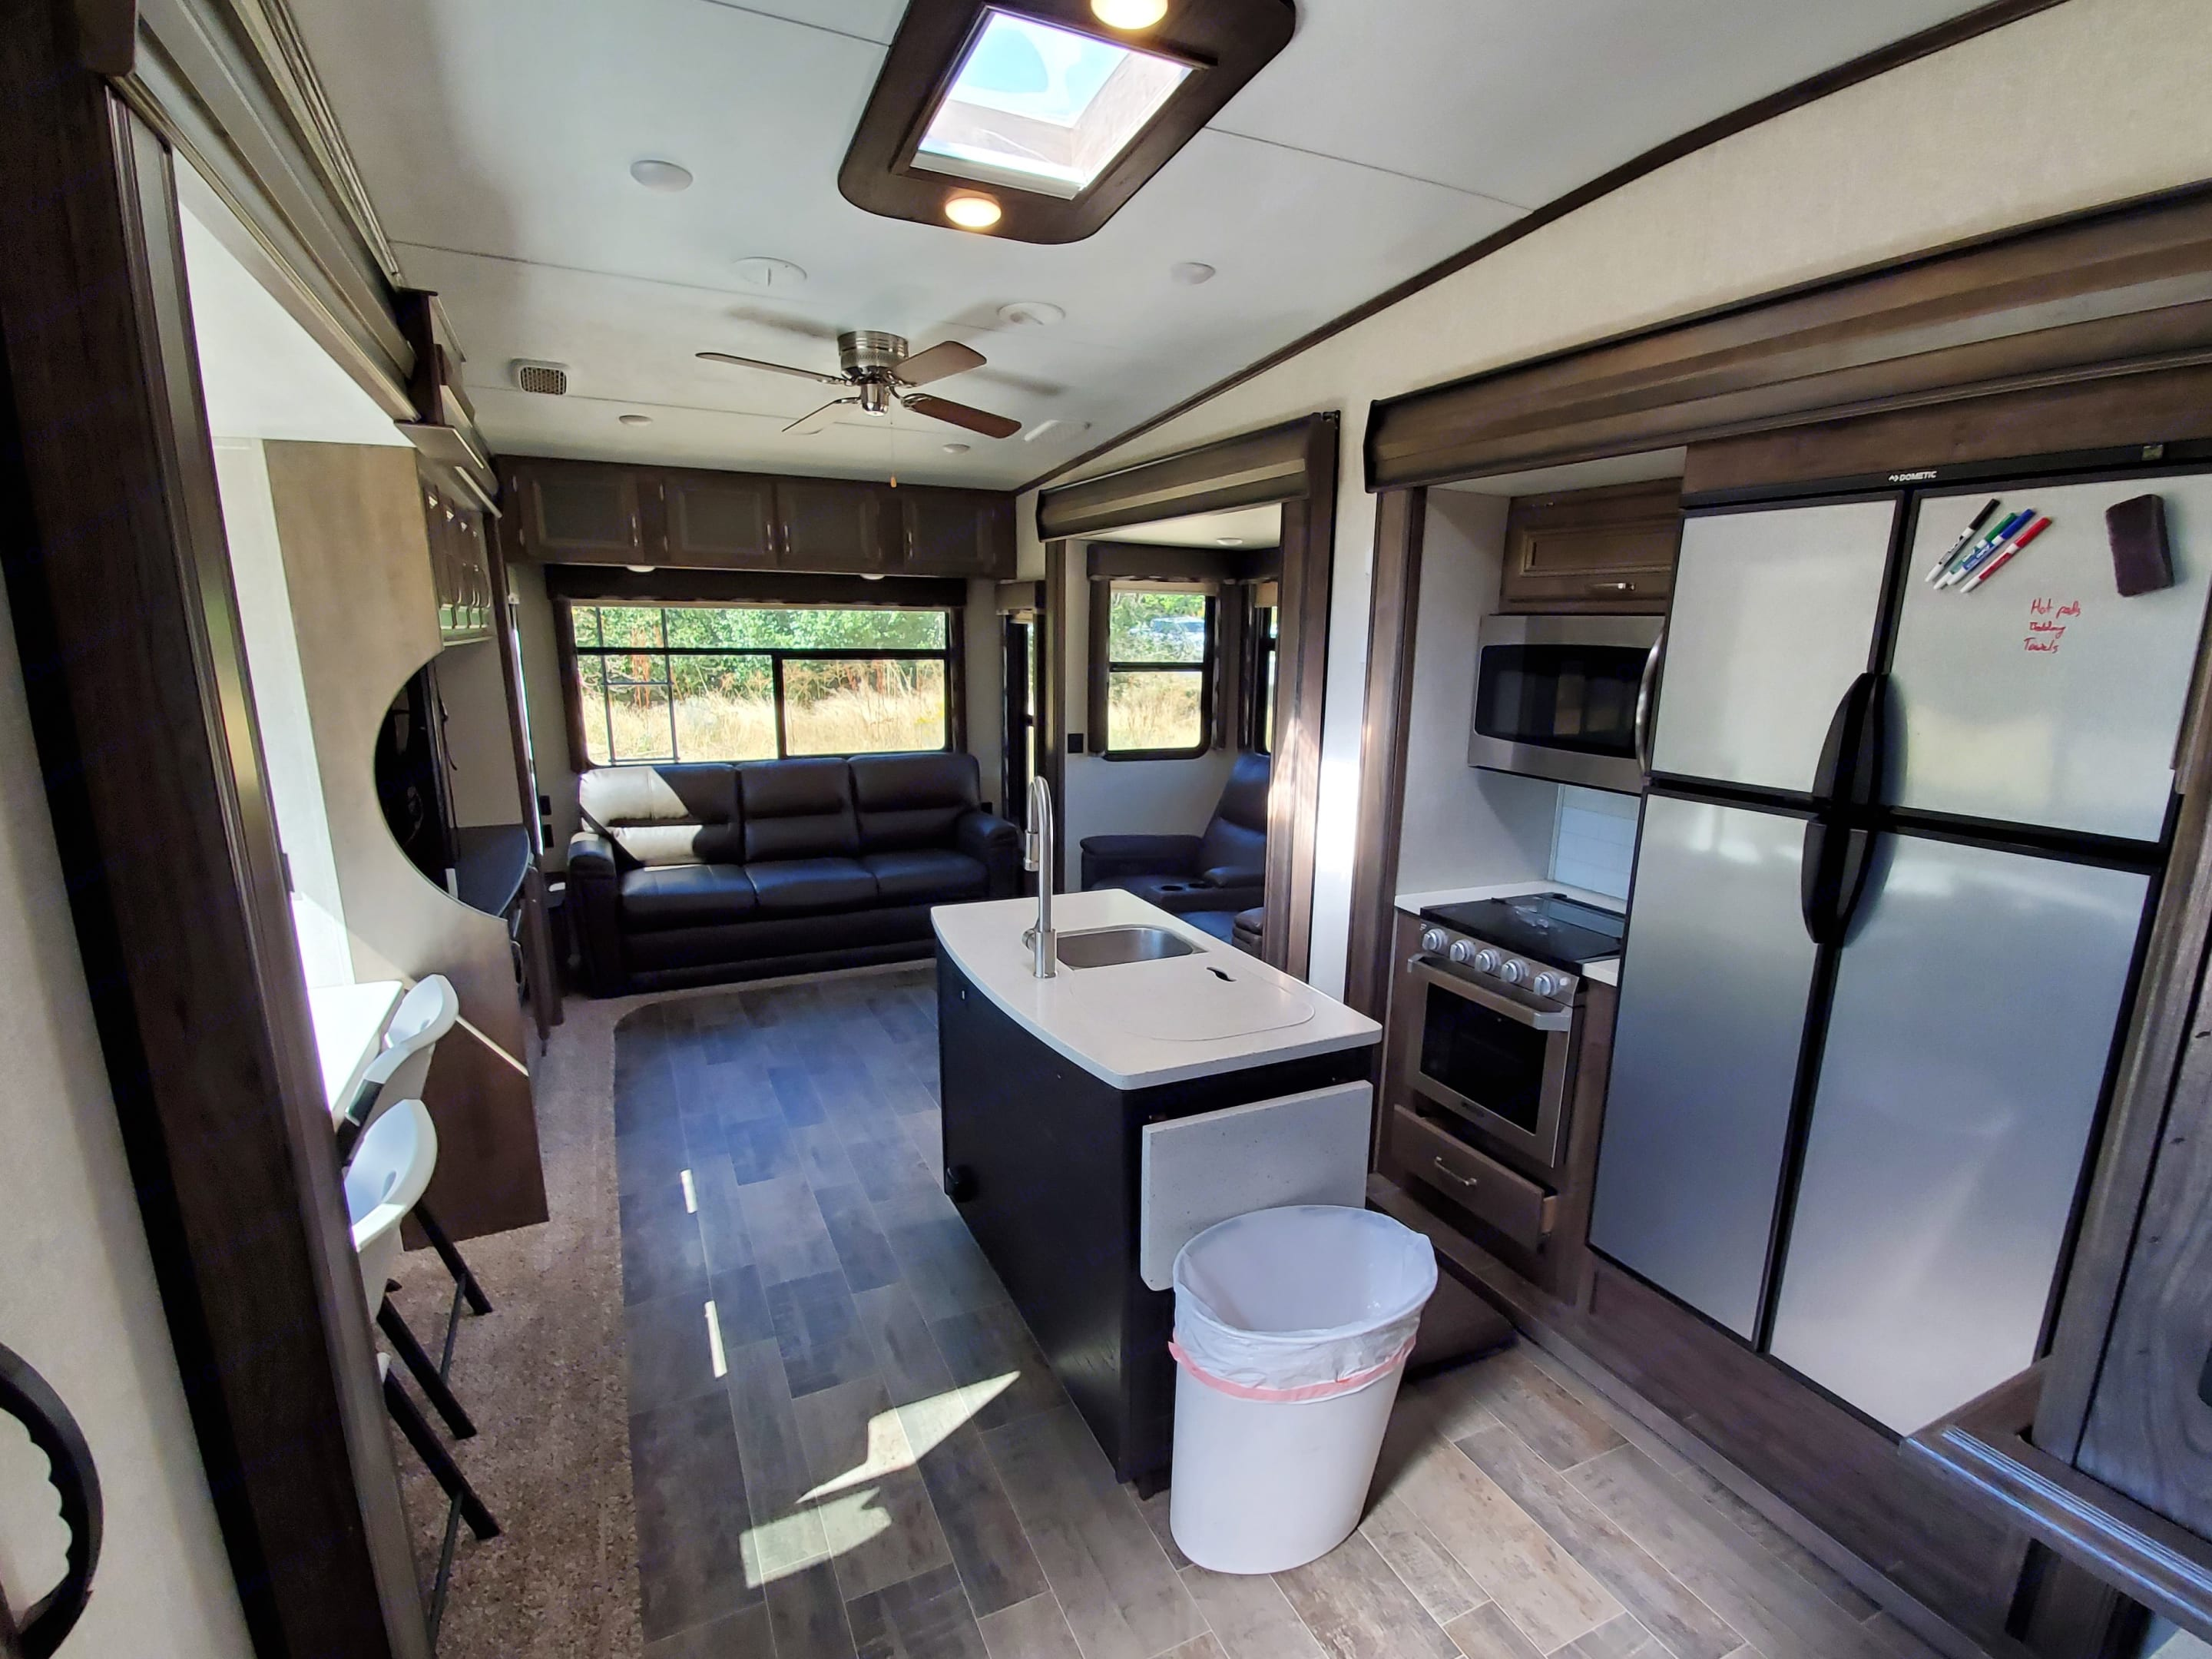 Spacious kitchen / living area featuring: island sink (dual basin), gas stove and oven, fridge/freezer, microwave, sky light, and ceiling fan.. Keystone Montana High Country 2019